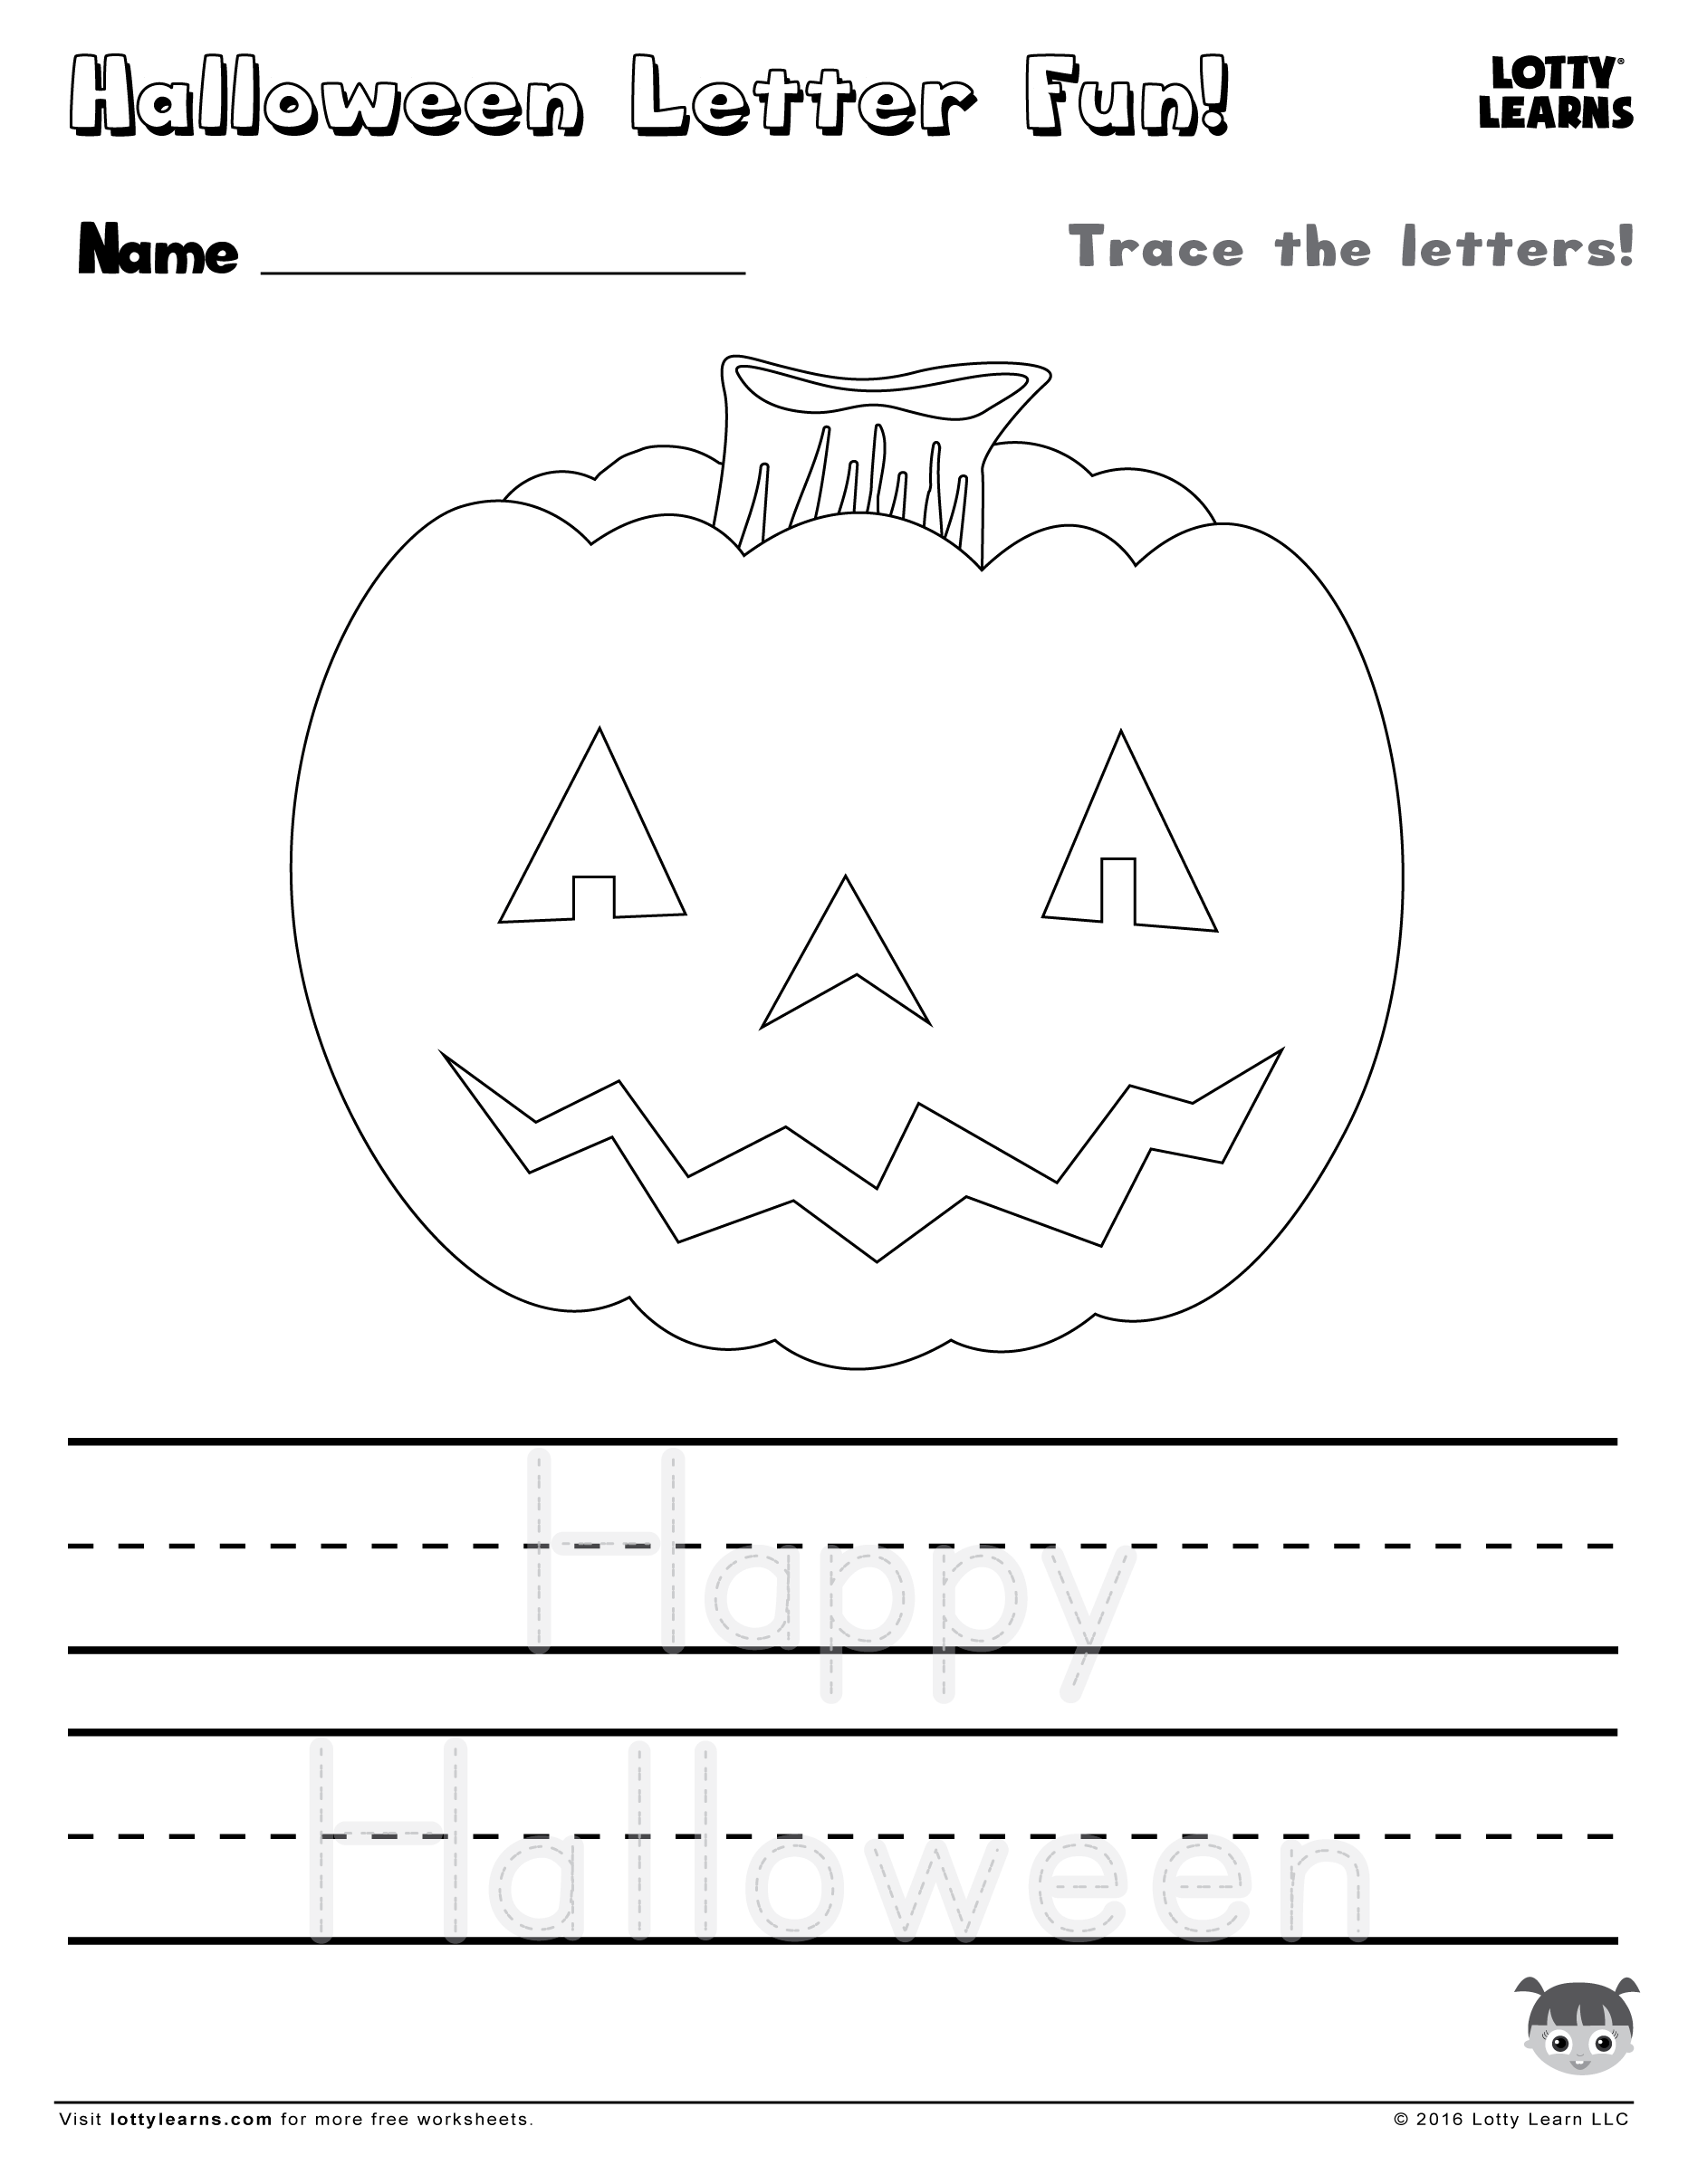 Download Share With Friends Halloween Letter